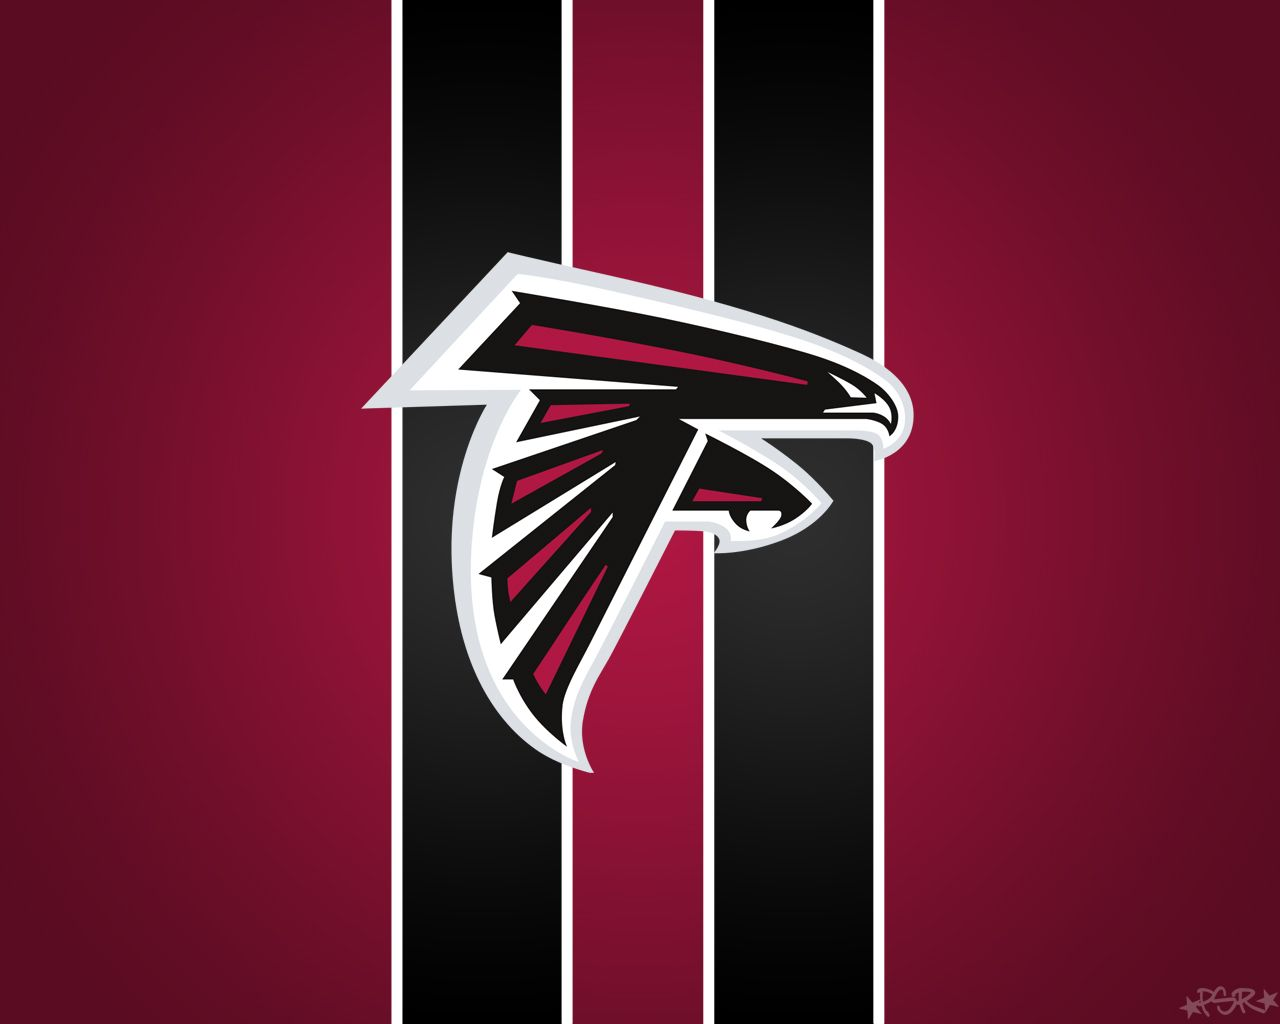 Falcons Atlanta Falcons Logo Atlanta Falcons Football Atlanta Falcons Wallpaper